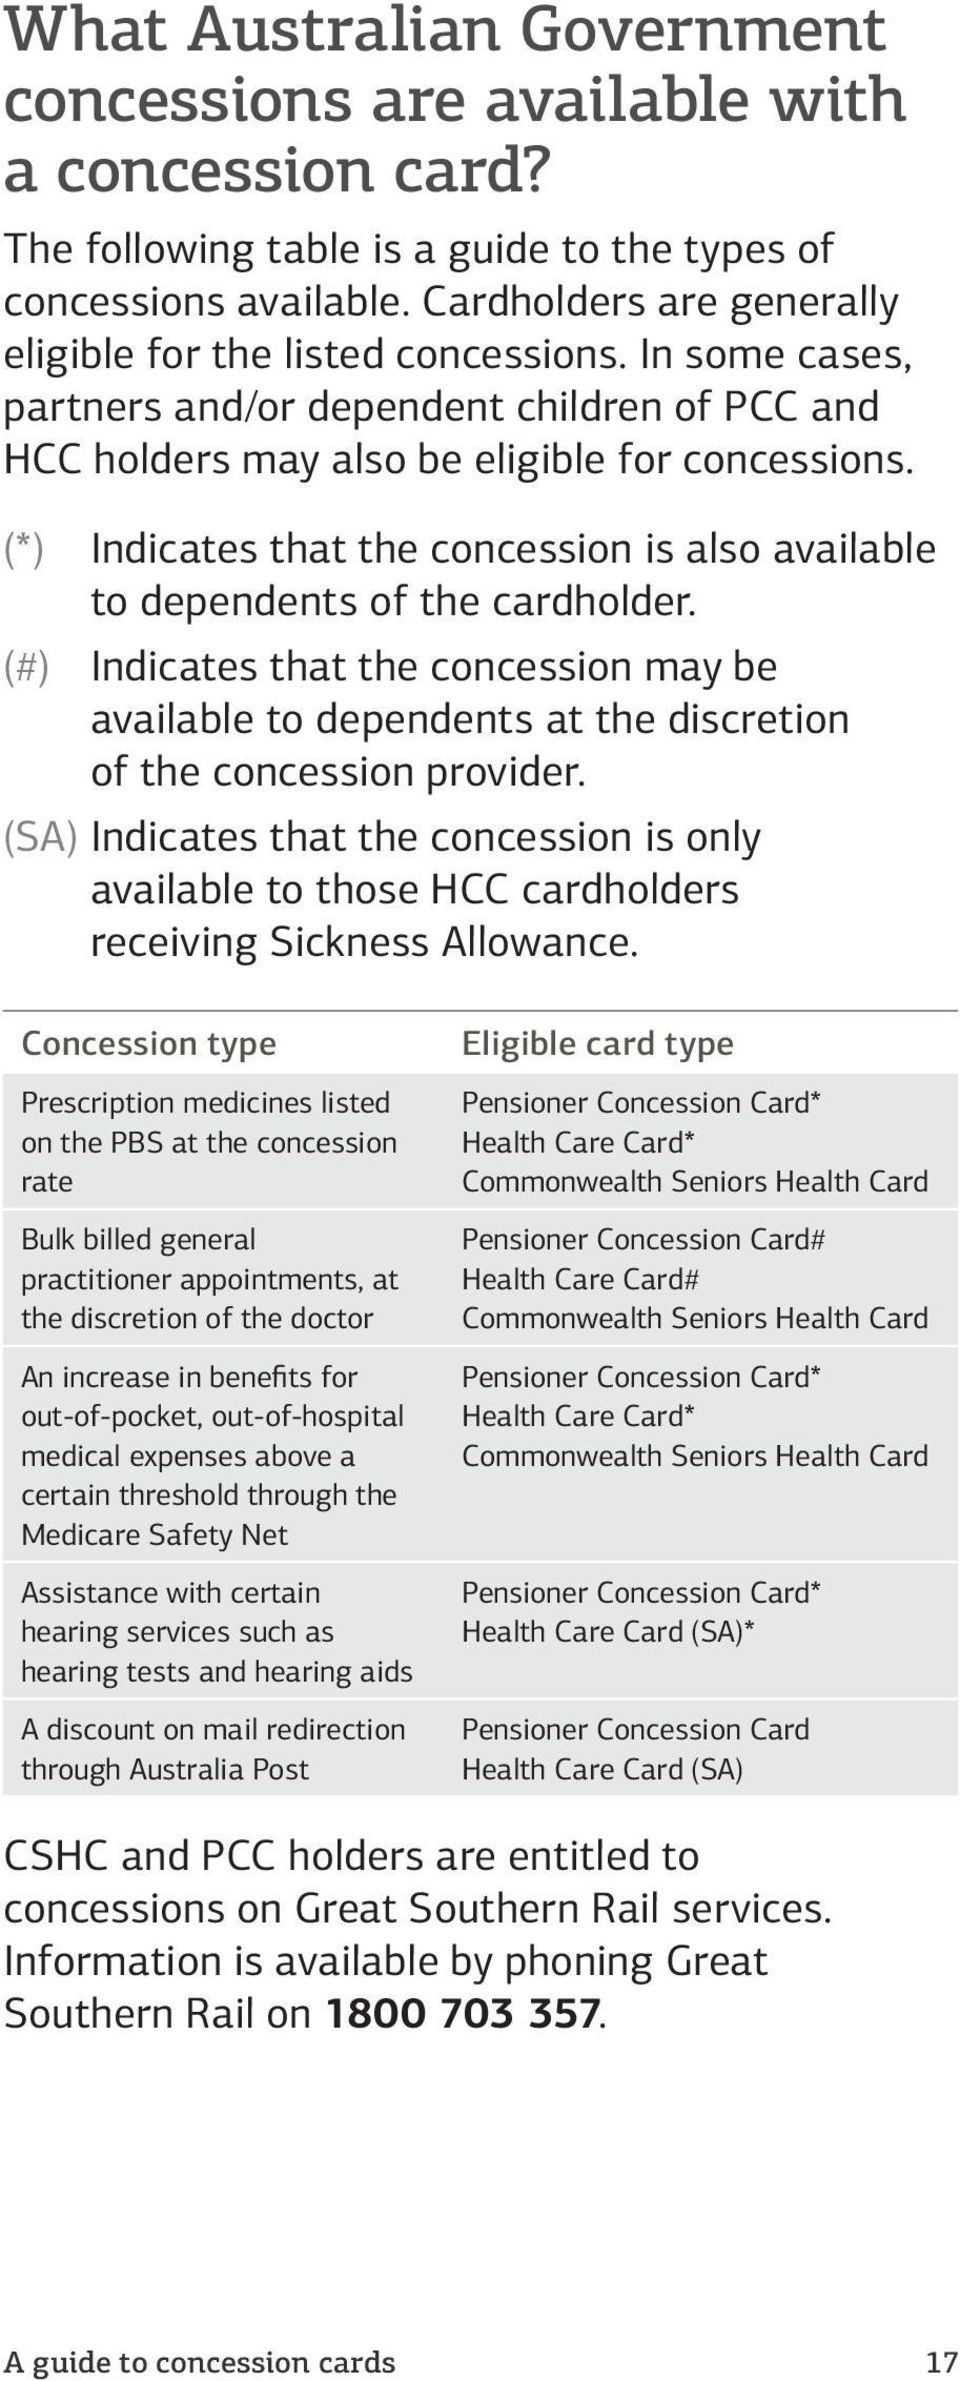 (*) Indicates that the concession is also available to dependents of the cardholder. (#) Indicates that the concession may be available to dependents at the discretion of the concession provider.